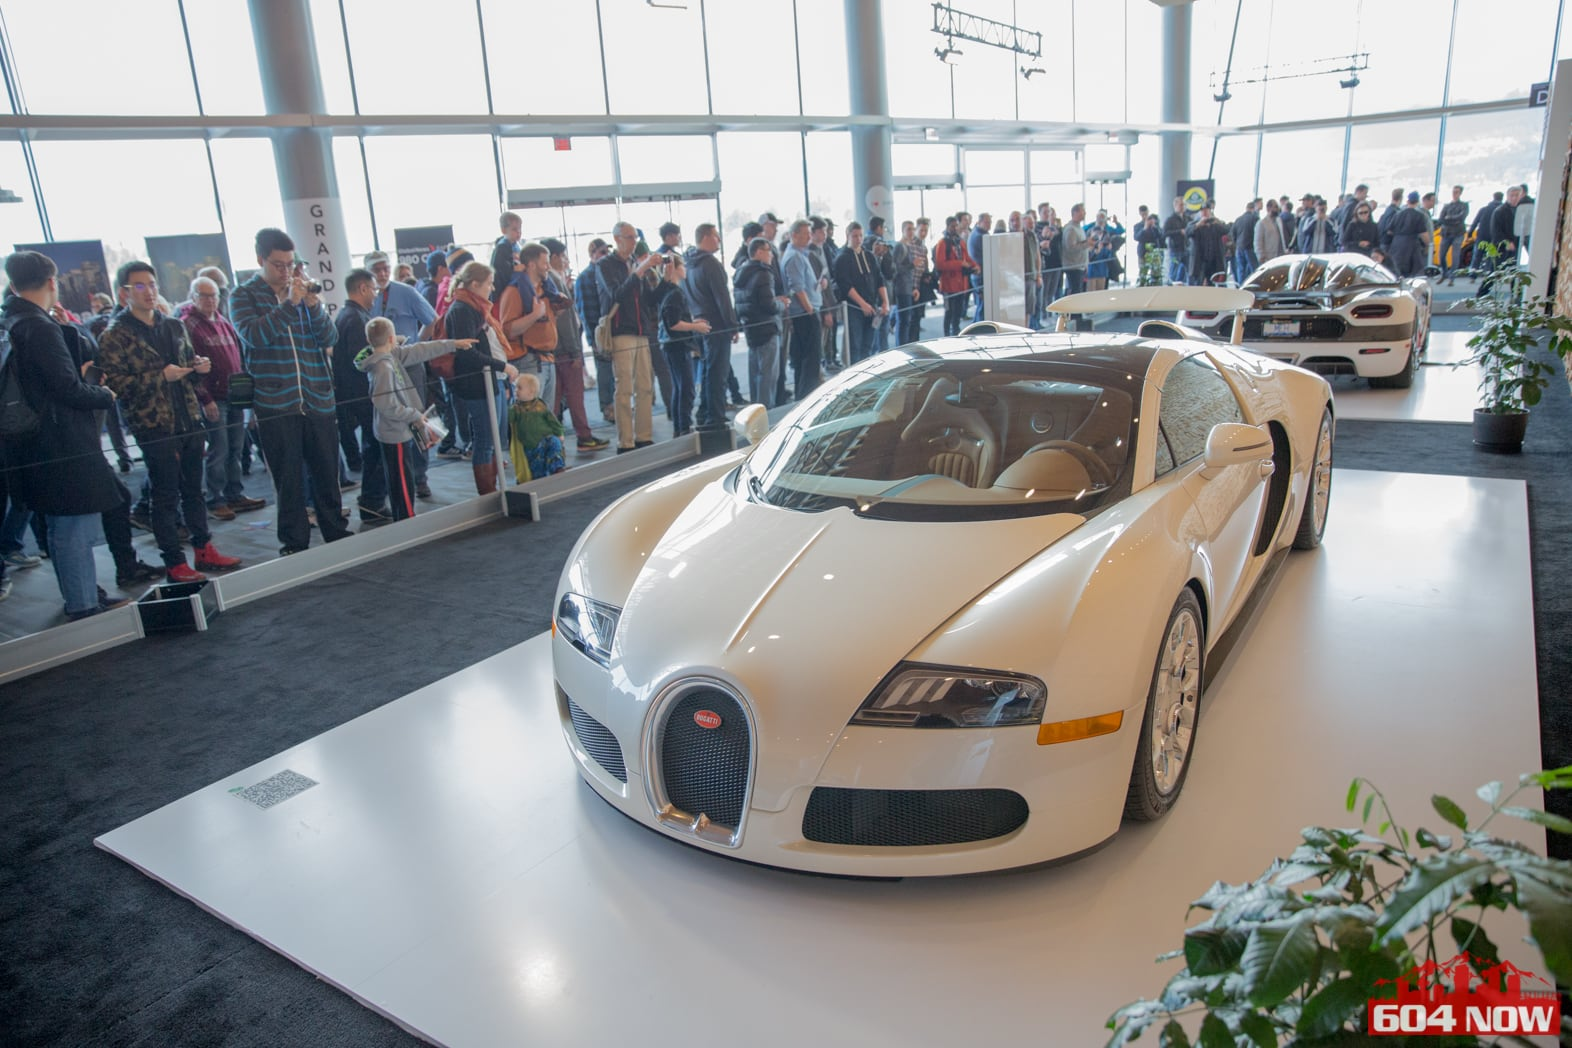 Sneak Peek The Most Exciting Cars At The Vancouver Auto Show Photos - Car show vancouver 2018